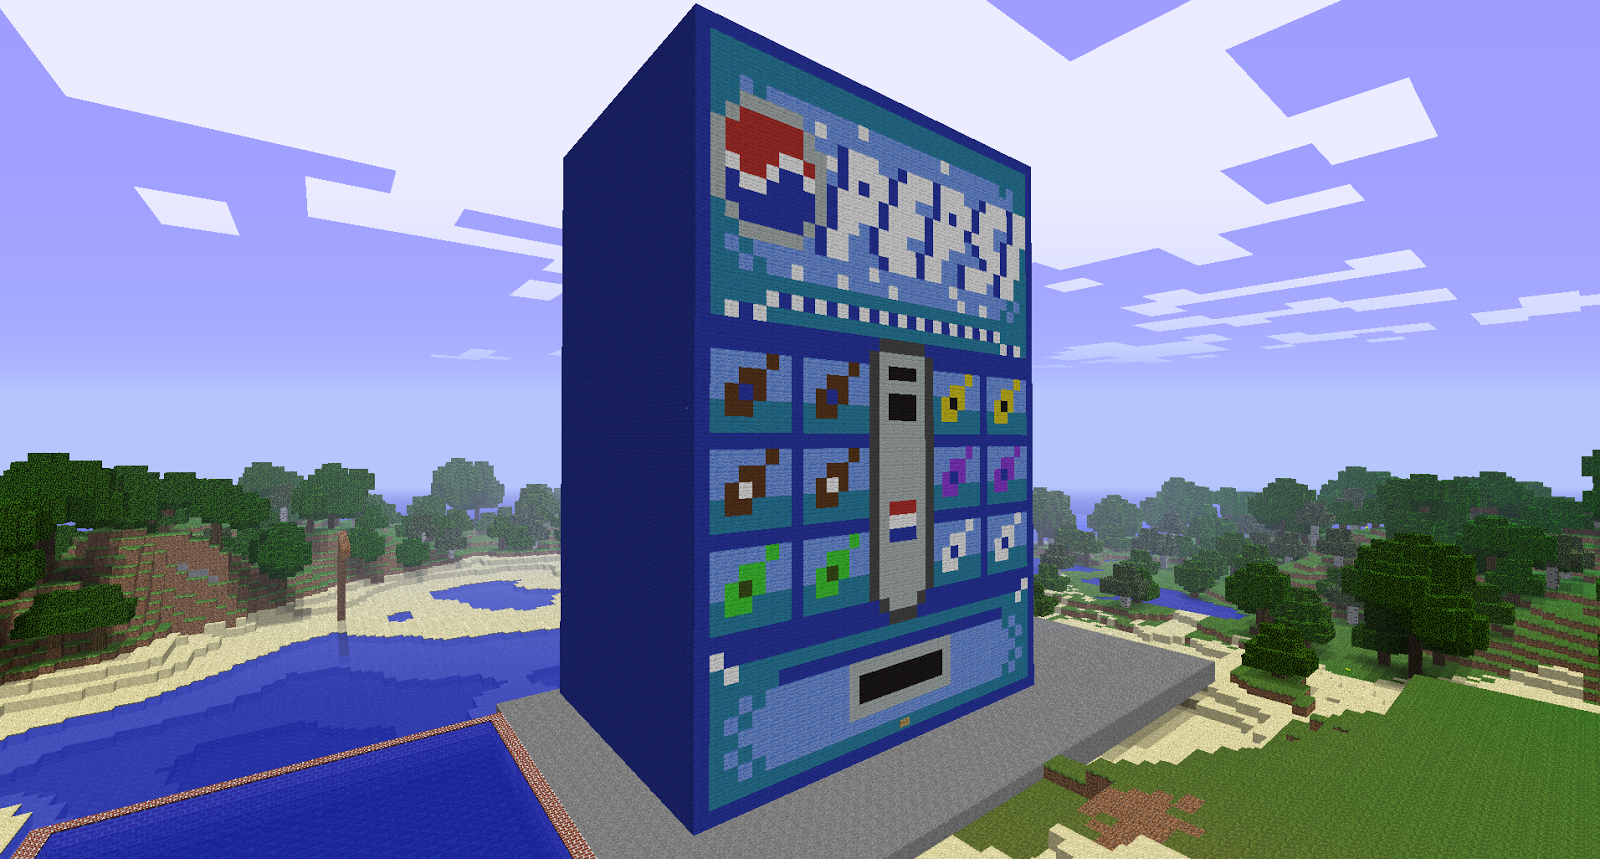 Cool Machines To Build Minecraft More Awesome Minecraft Creations